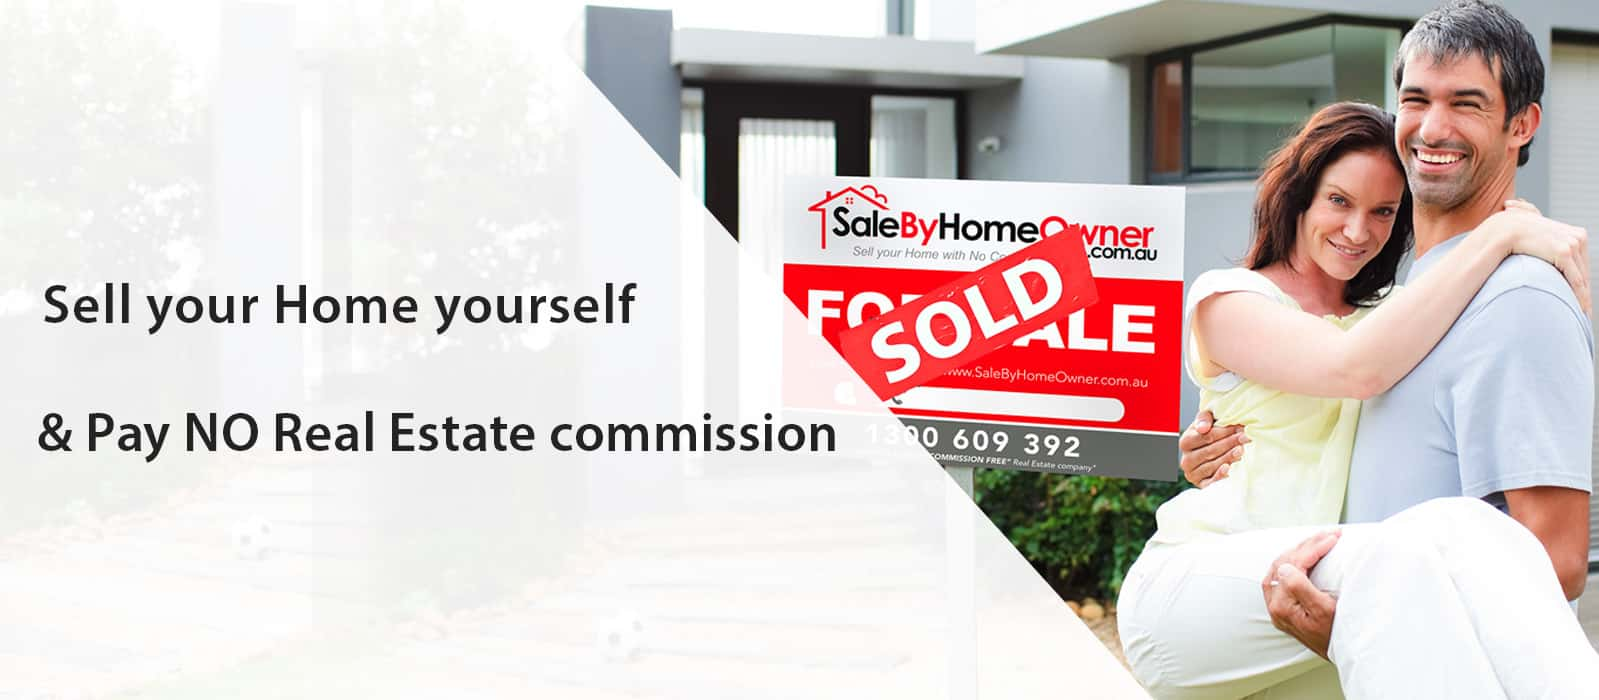 Sell-your-home-without-a-real-estate-agent